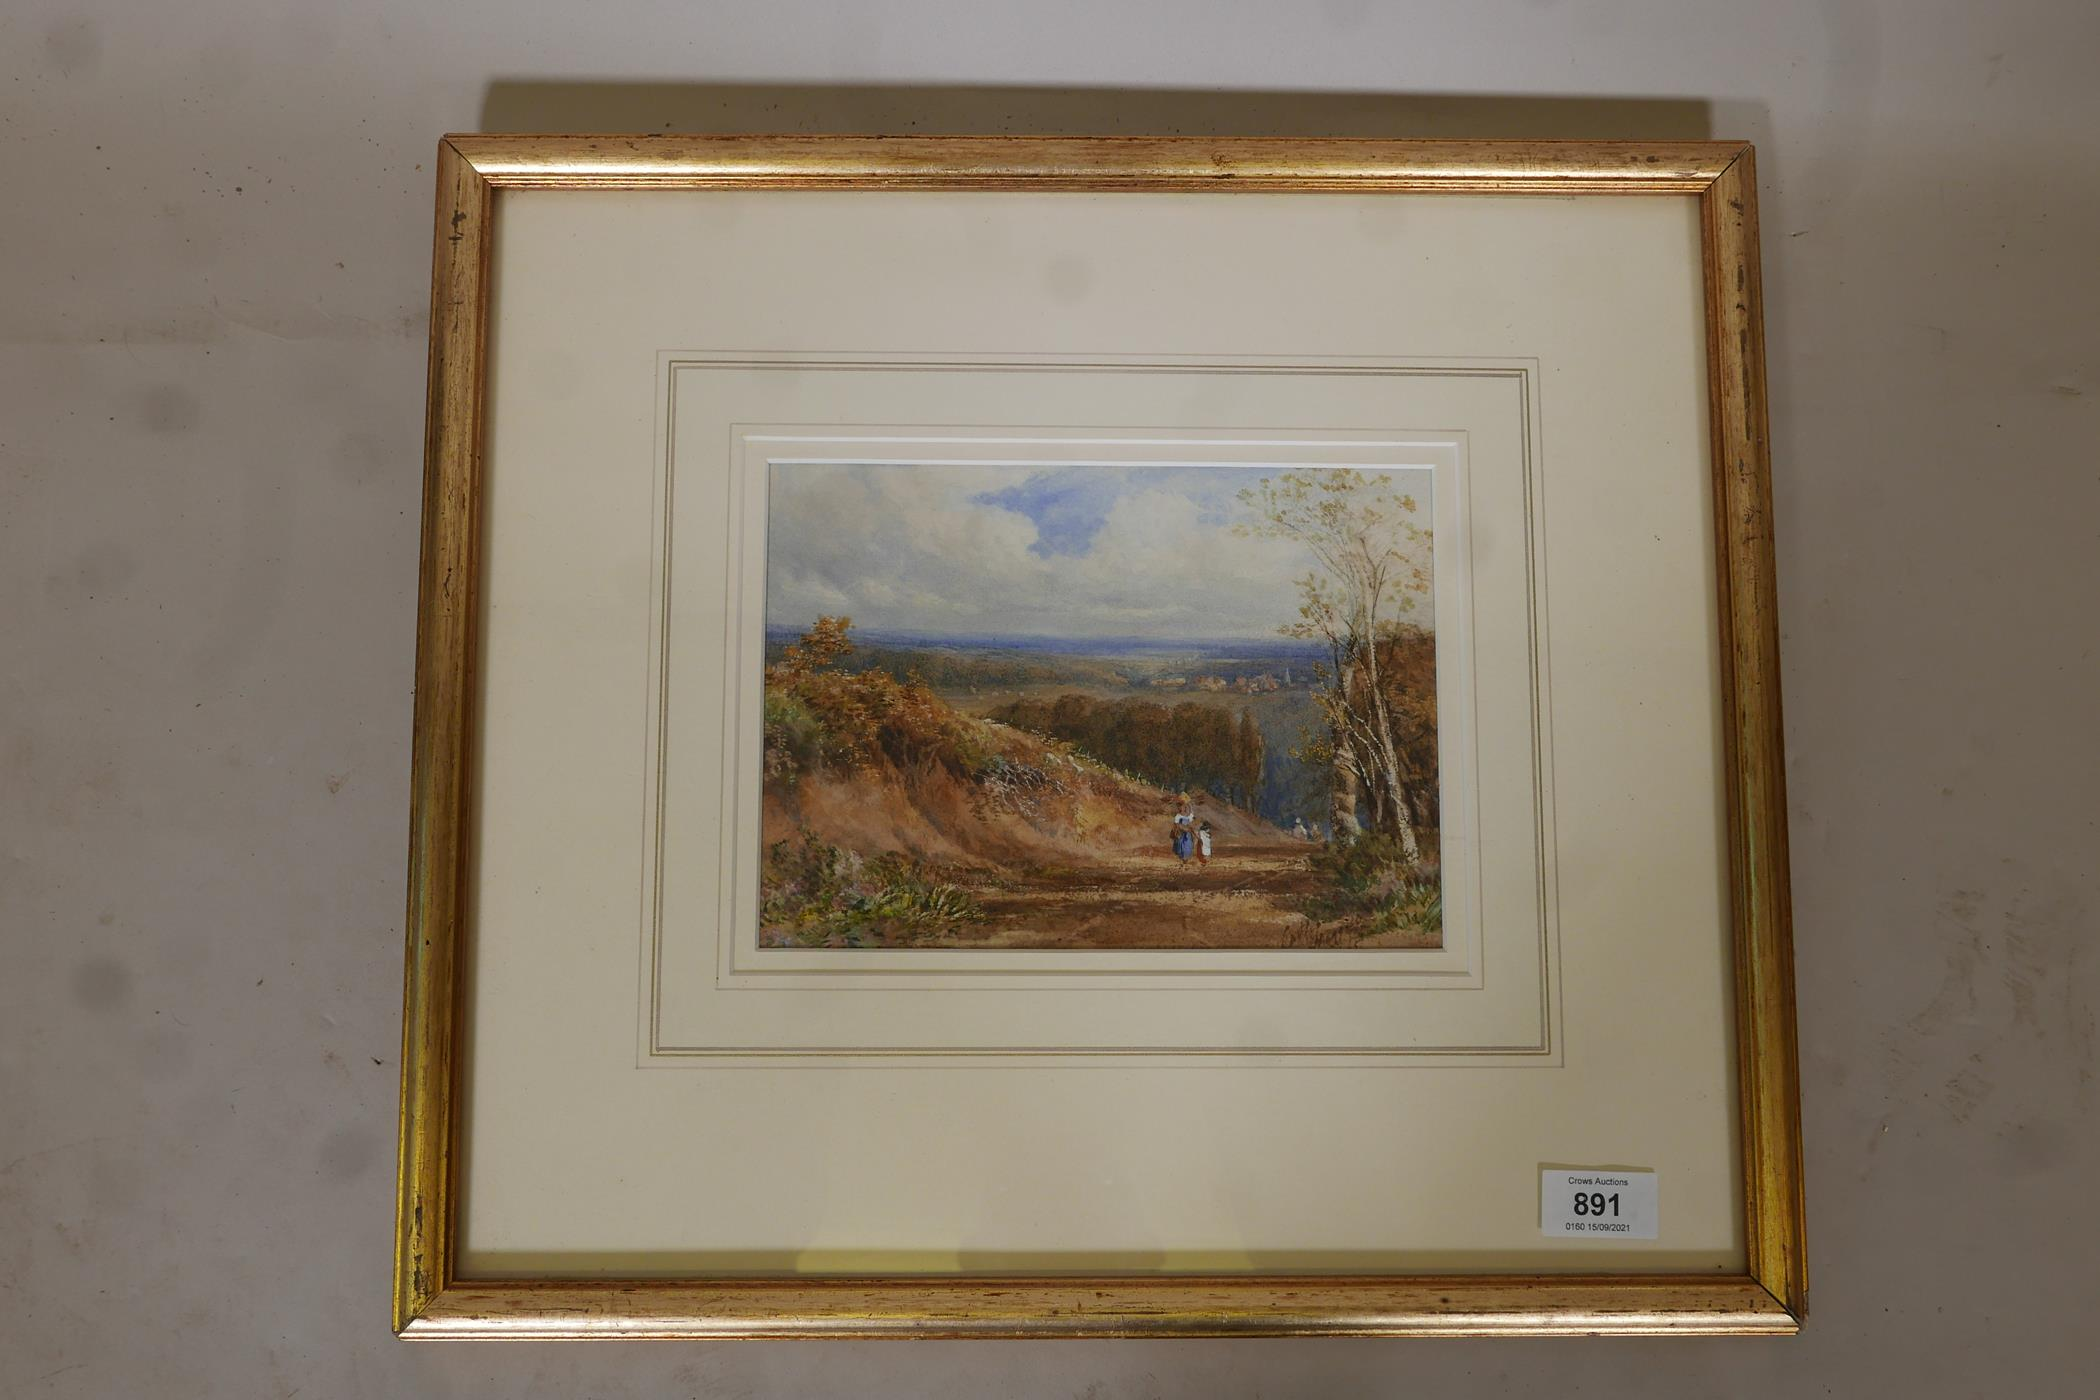 Extensive landscape with figures on a path, signed indistinctly Cath Huggiss ?, C19th watercolour, - Image 3 of 5